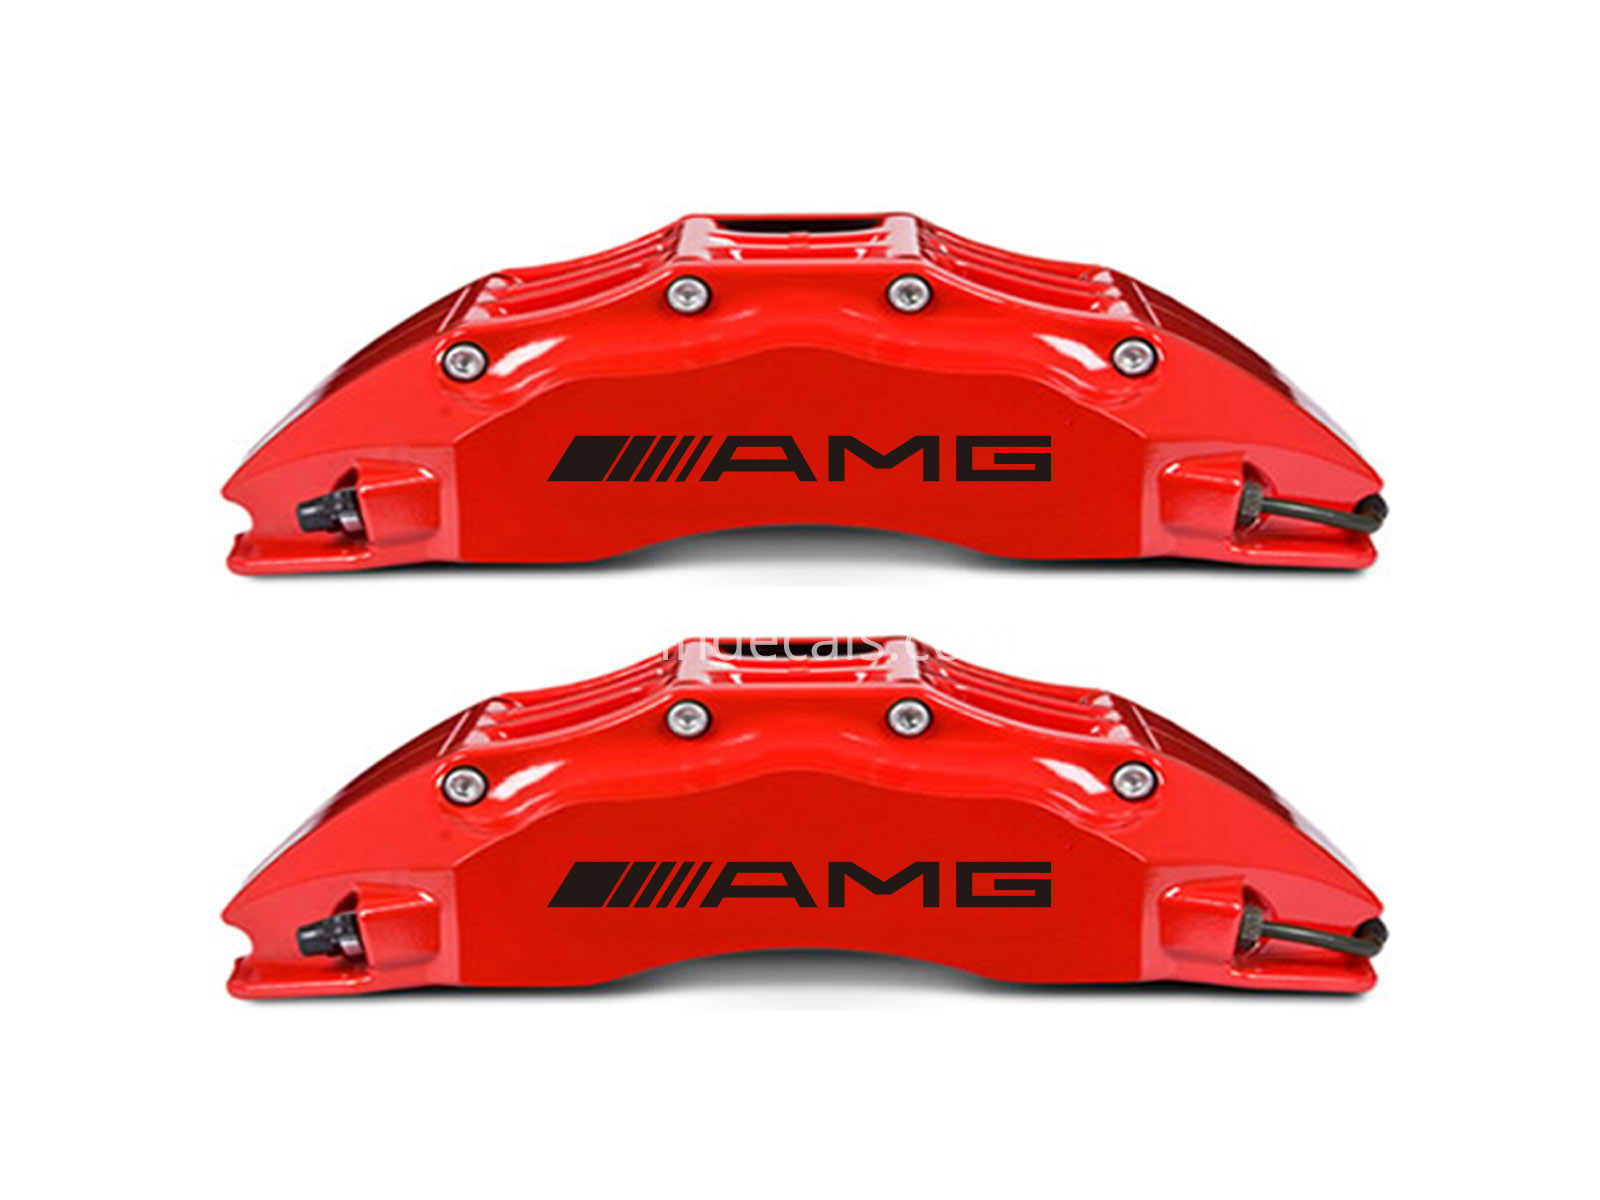 6 x AMG Stickers for Brakes - Black